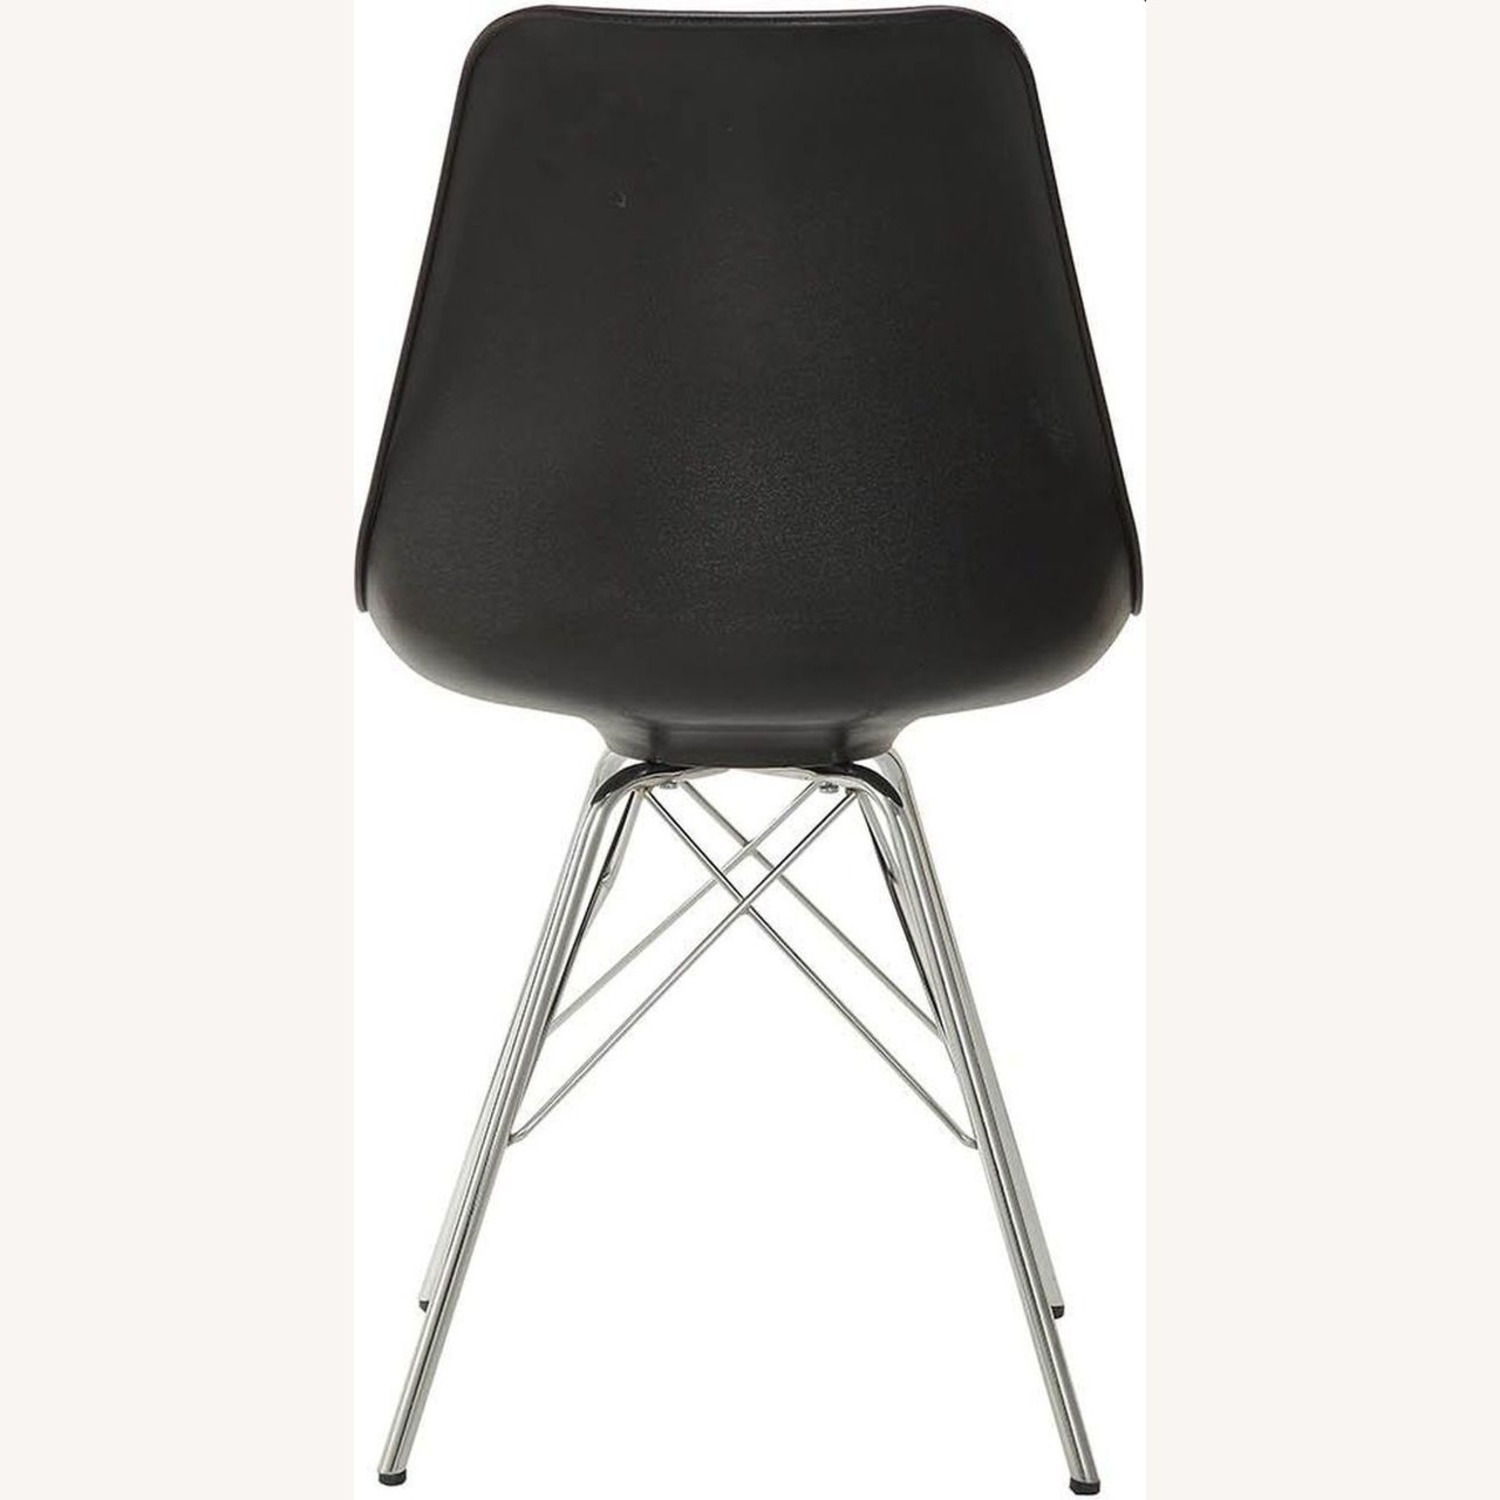 Modern Black Side Chair W Padded Cushion - image-2